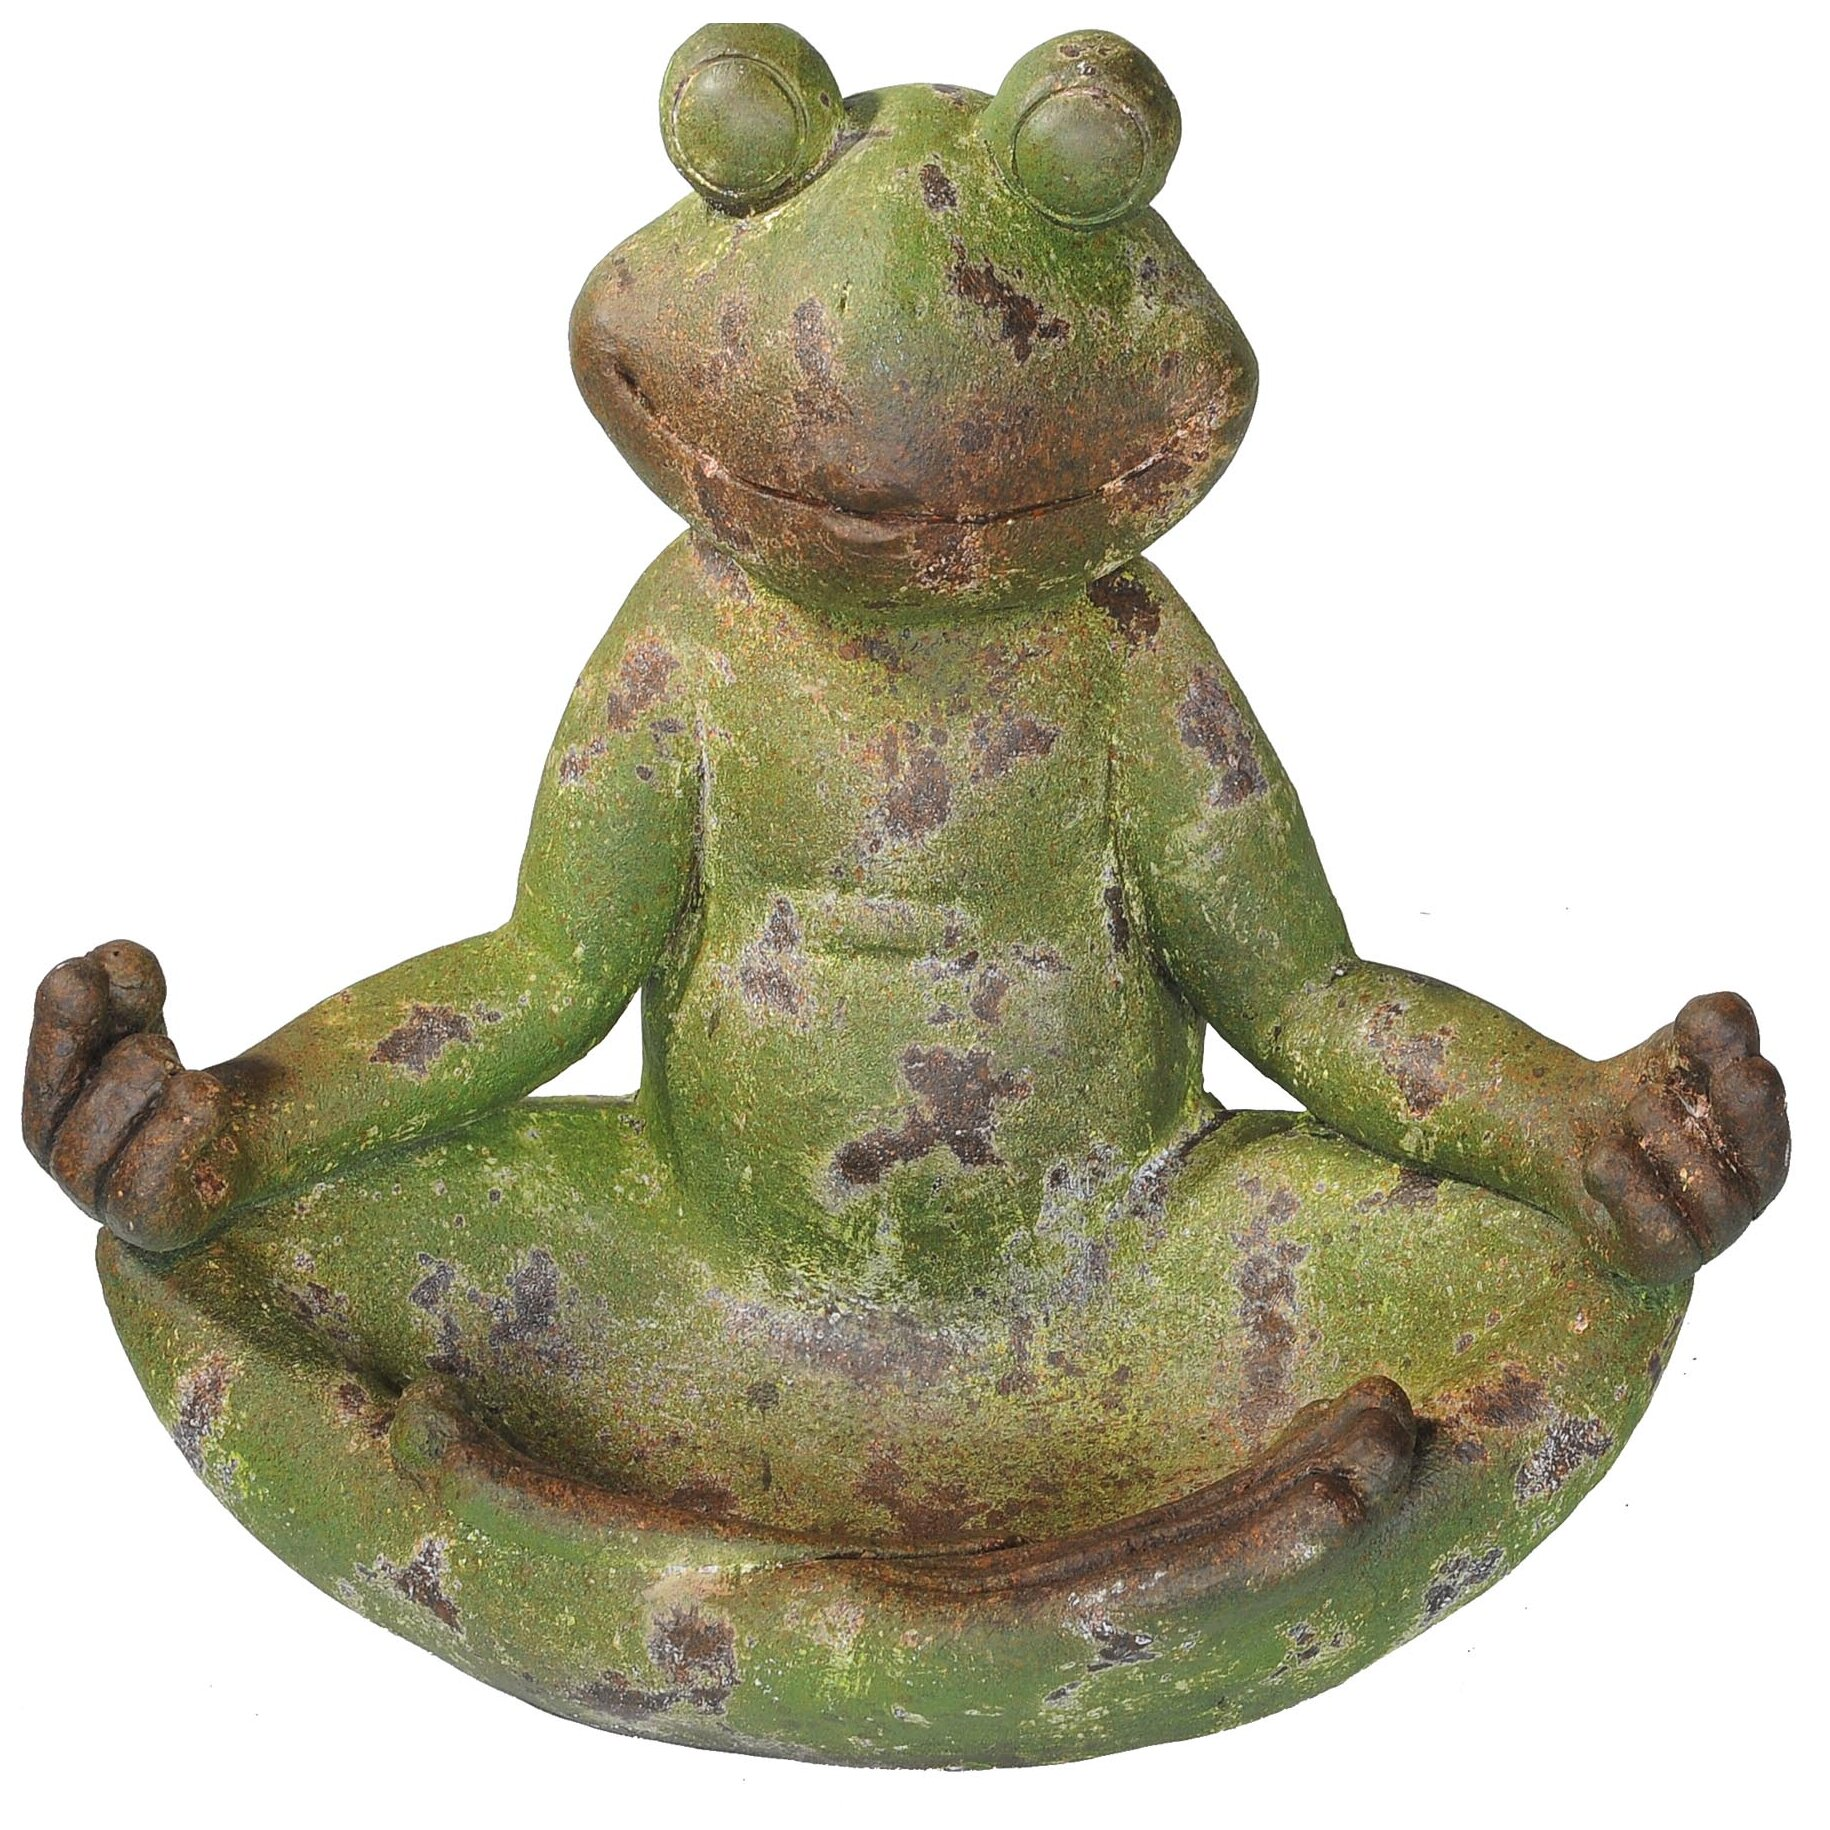 Sunjoy Frog in Lotus Position Garden Statue Reviews Wayfair